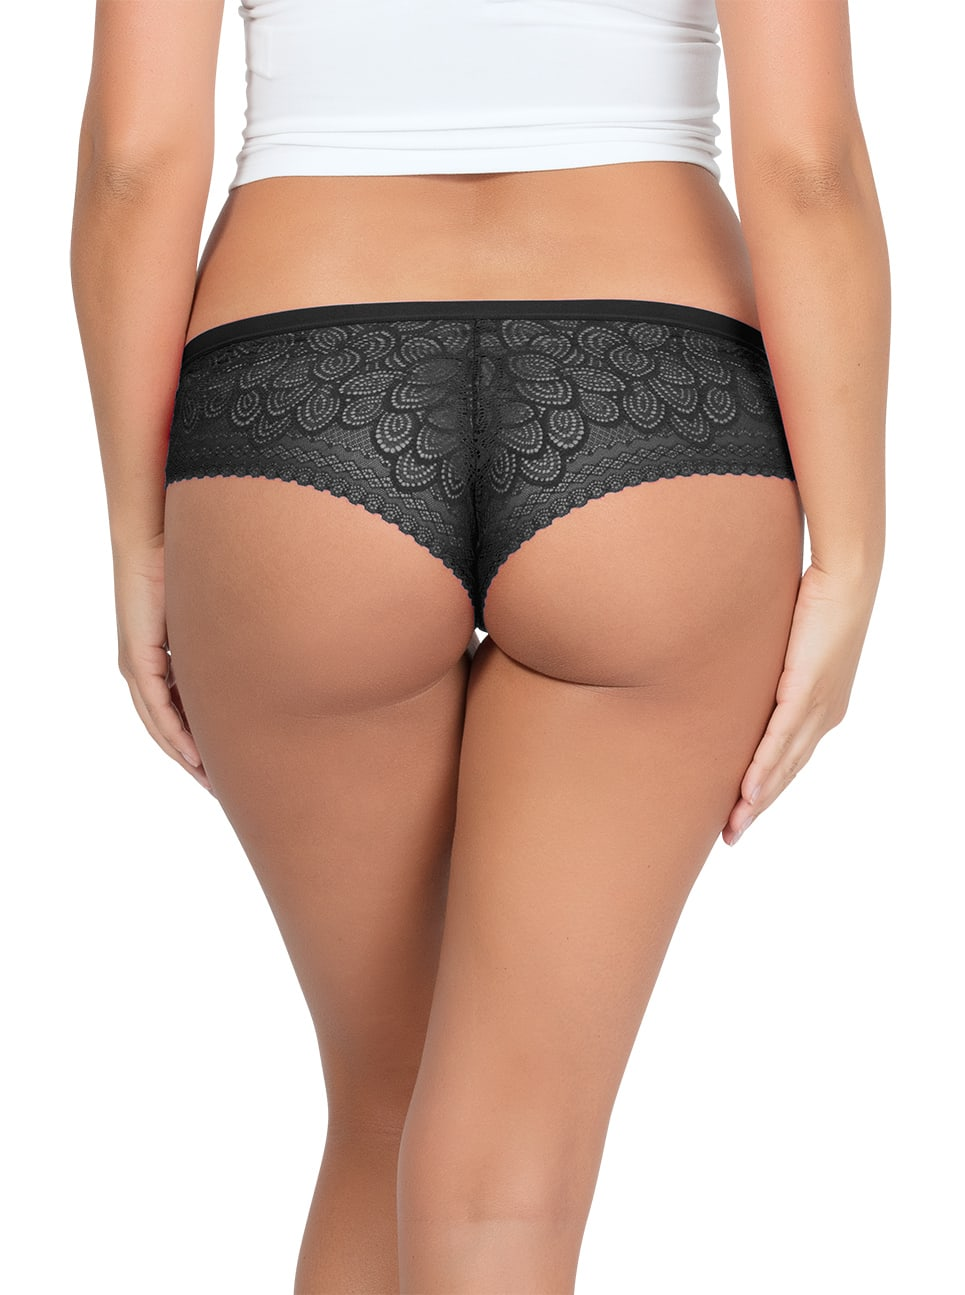 ParfaitPanty SoGlam HipsterPP502 Black BAck1 copy - Panty So Glam Hipster - Black - PP502